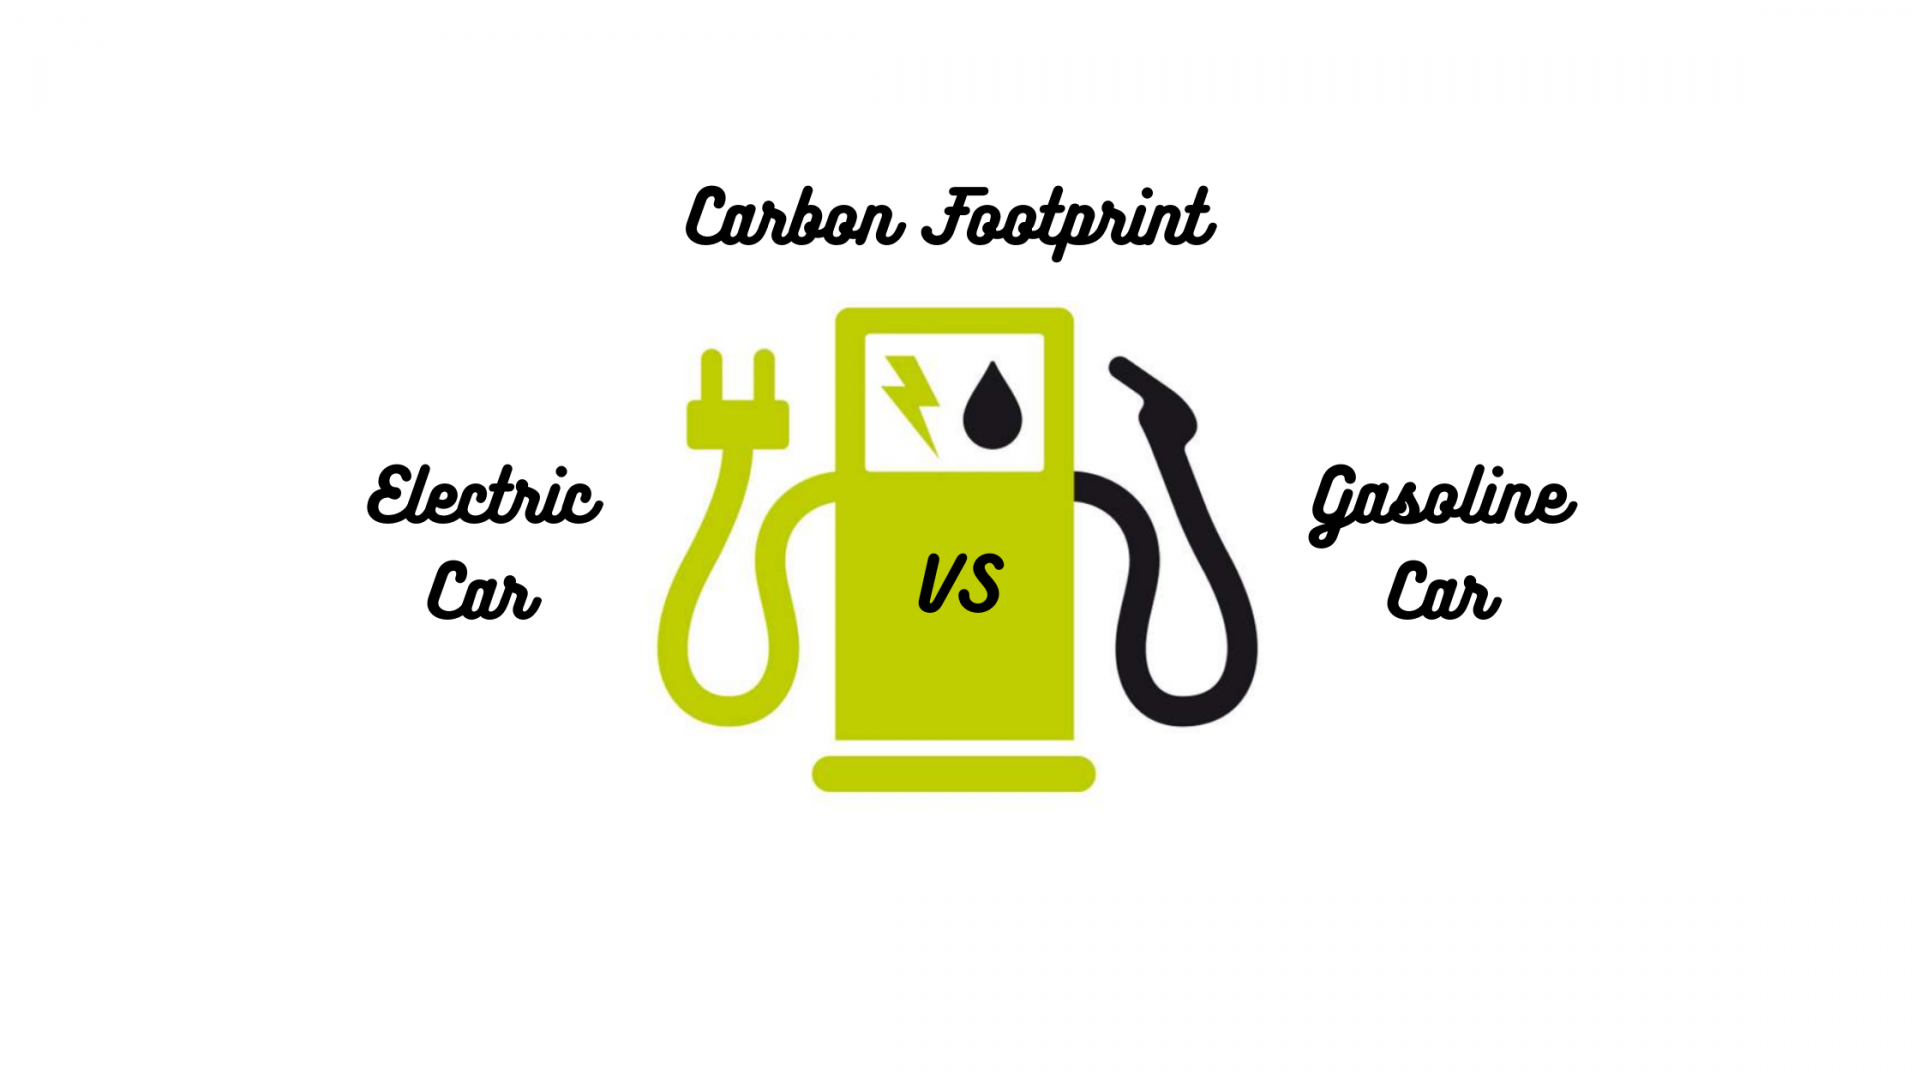 Carbon Footprint of Electric Cars vs Gasoline Cars